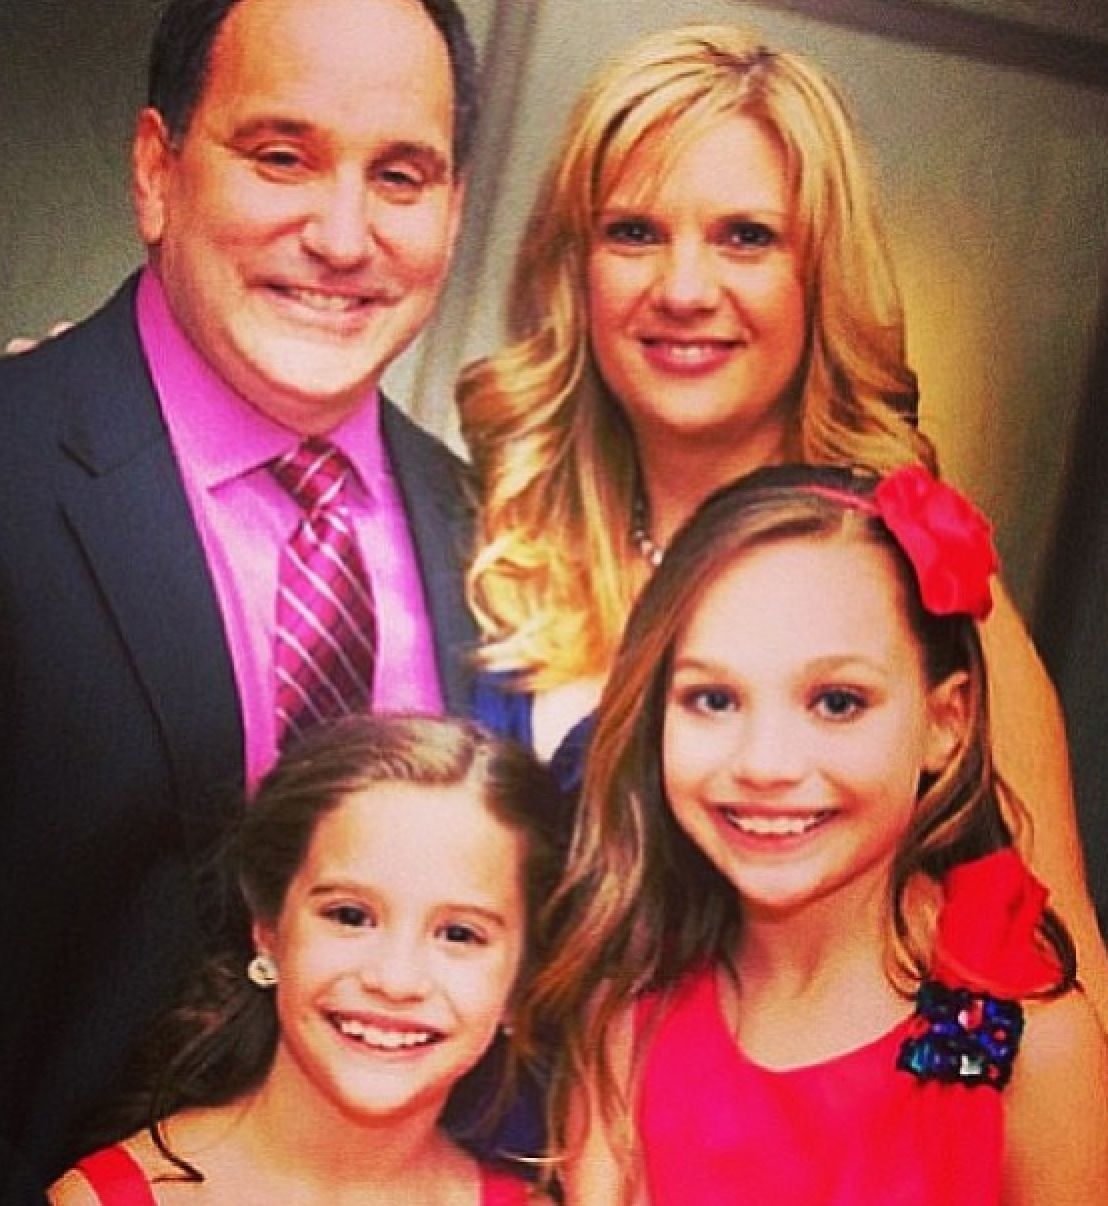 Way back in the day | my family | Dance moms comics, Dance